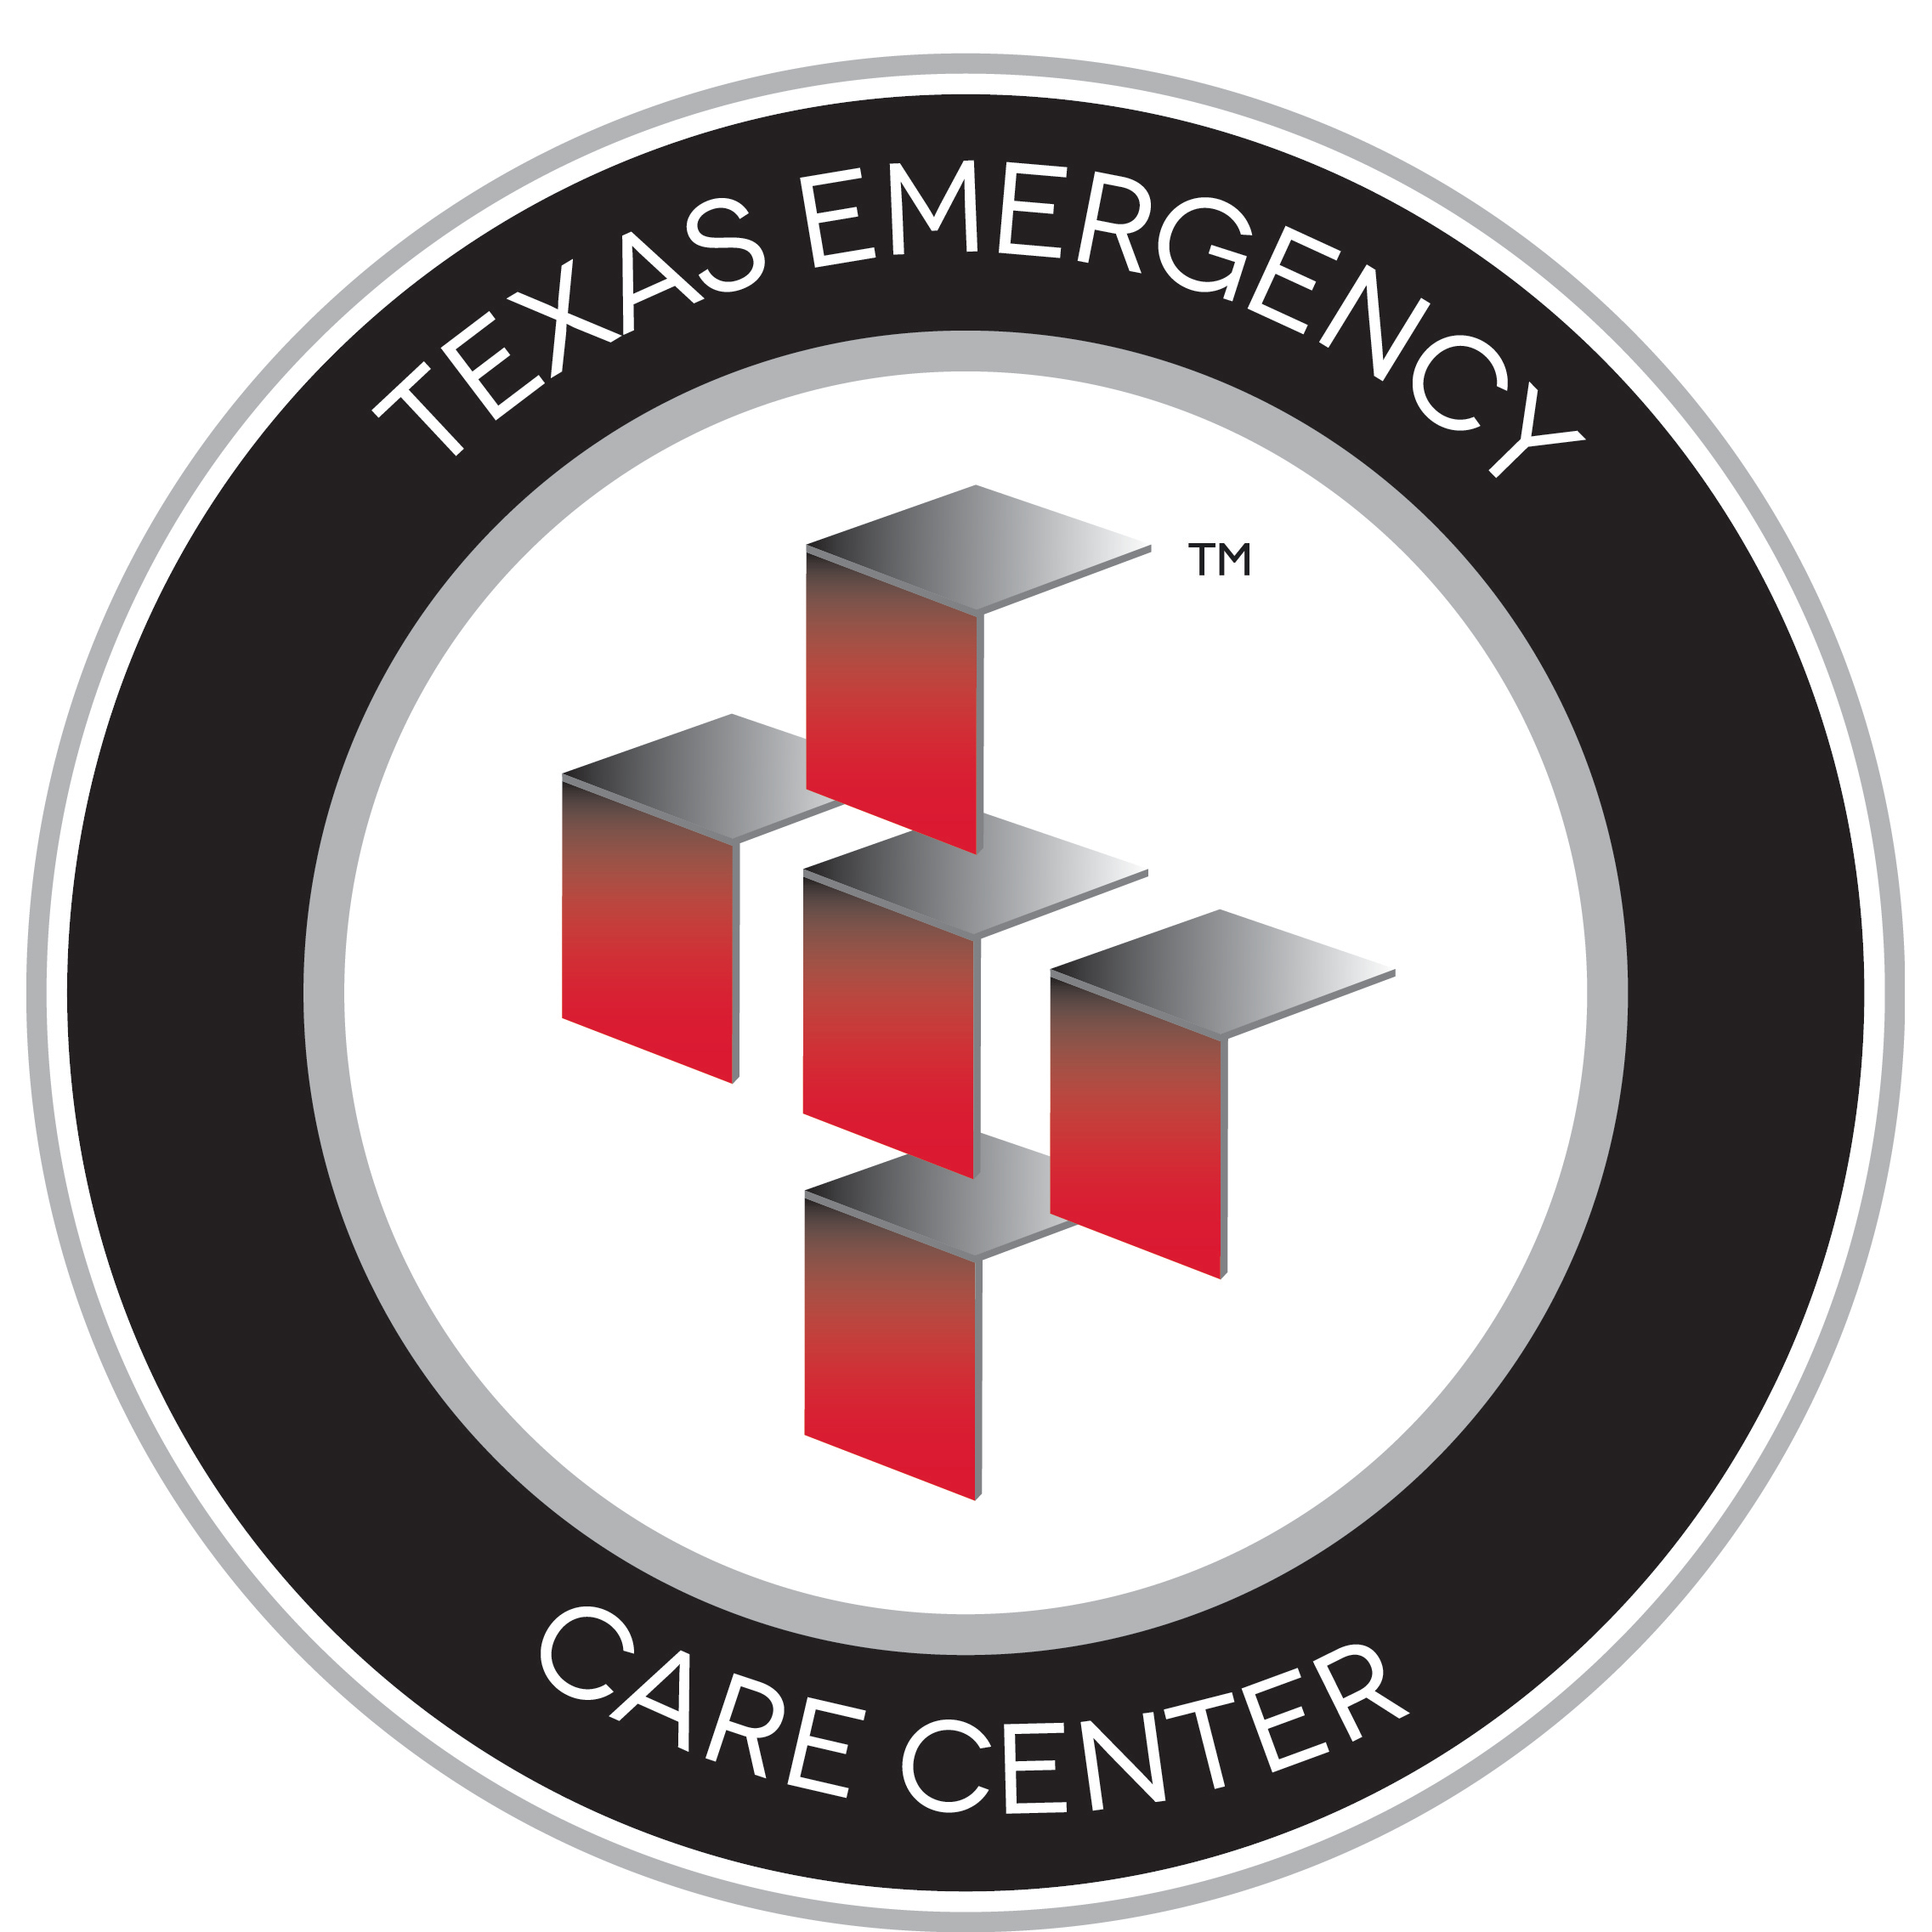 image of Texas Emergency Care Center